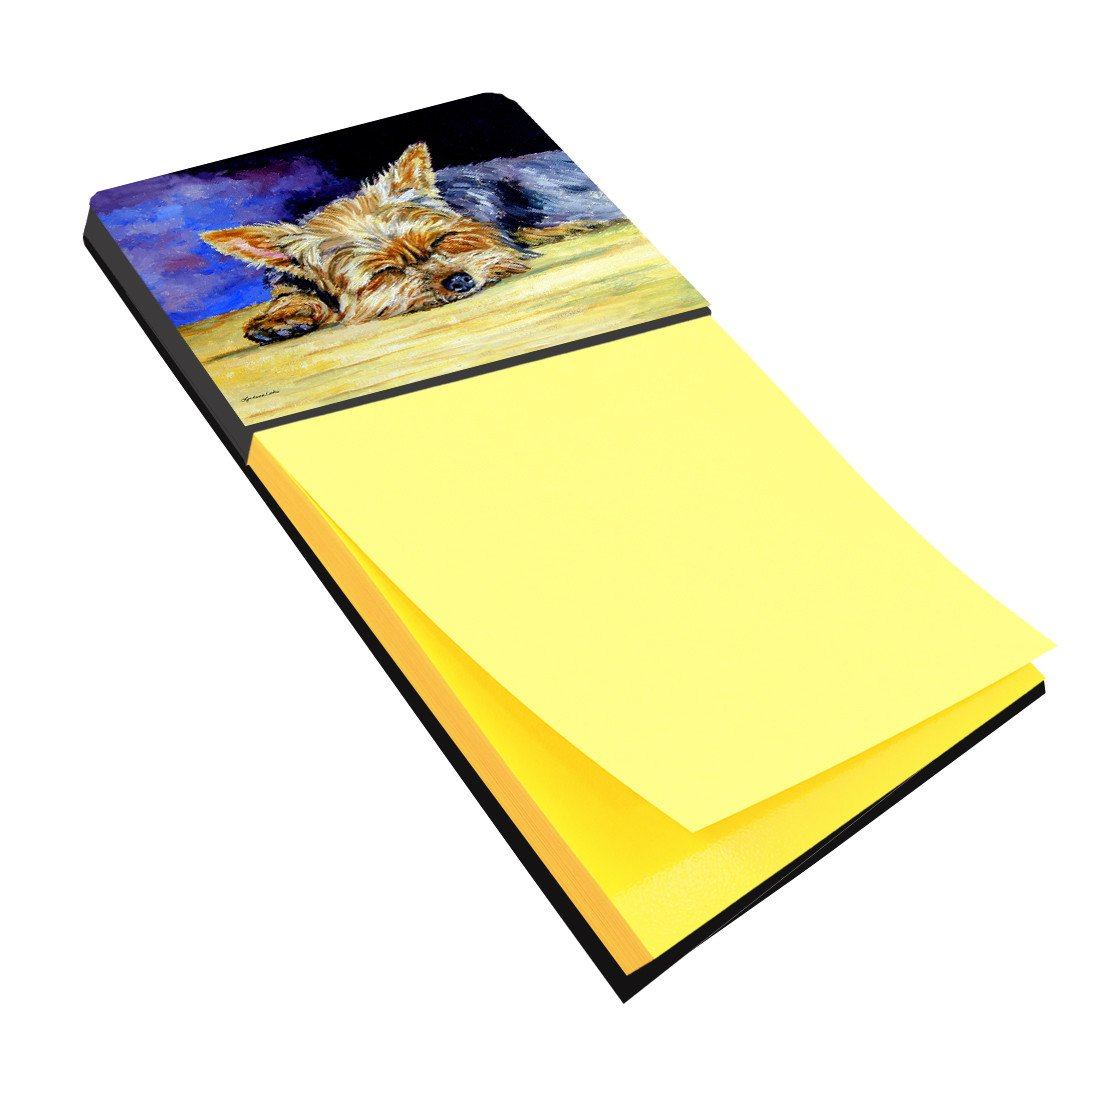 Yorkie Taking a Nap Sticky Note Holder 7357SN by Caroline's Treasures